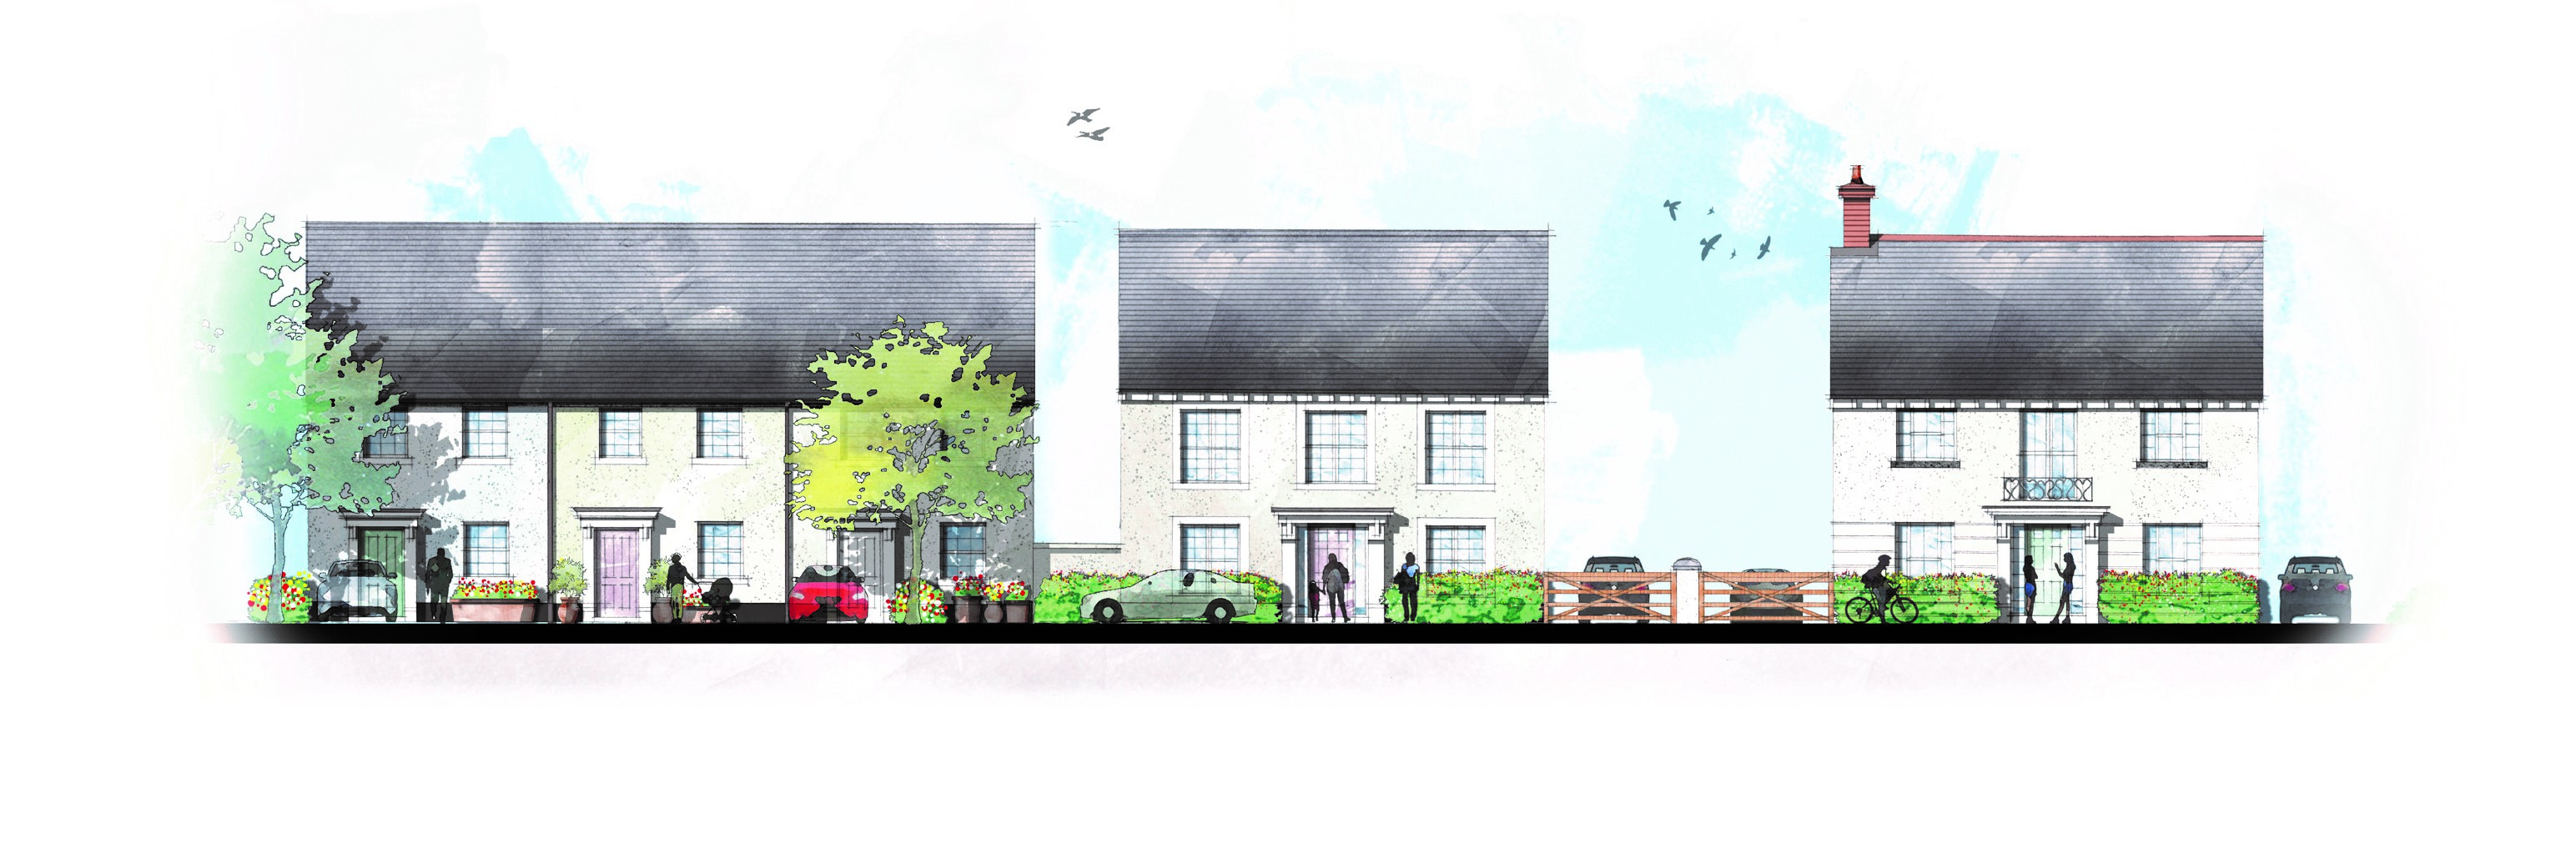 Baker Estates secures planning consent for new housing development in Appledore